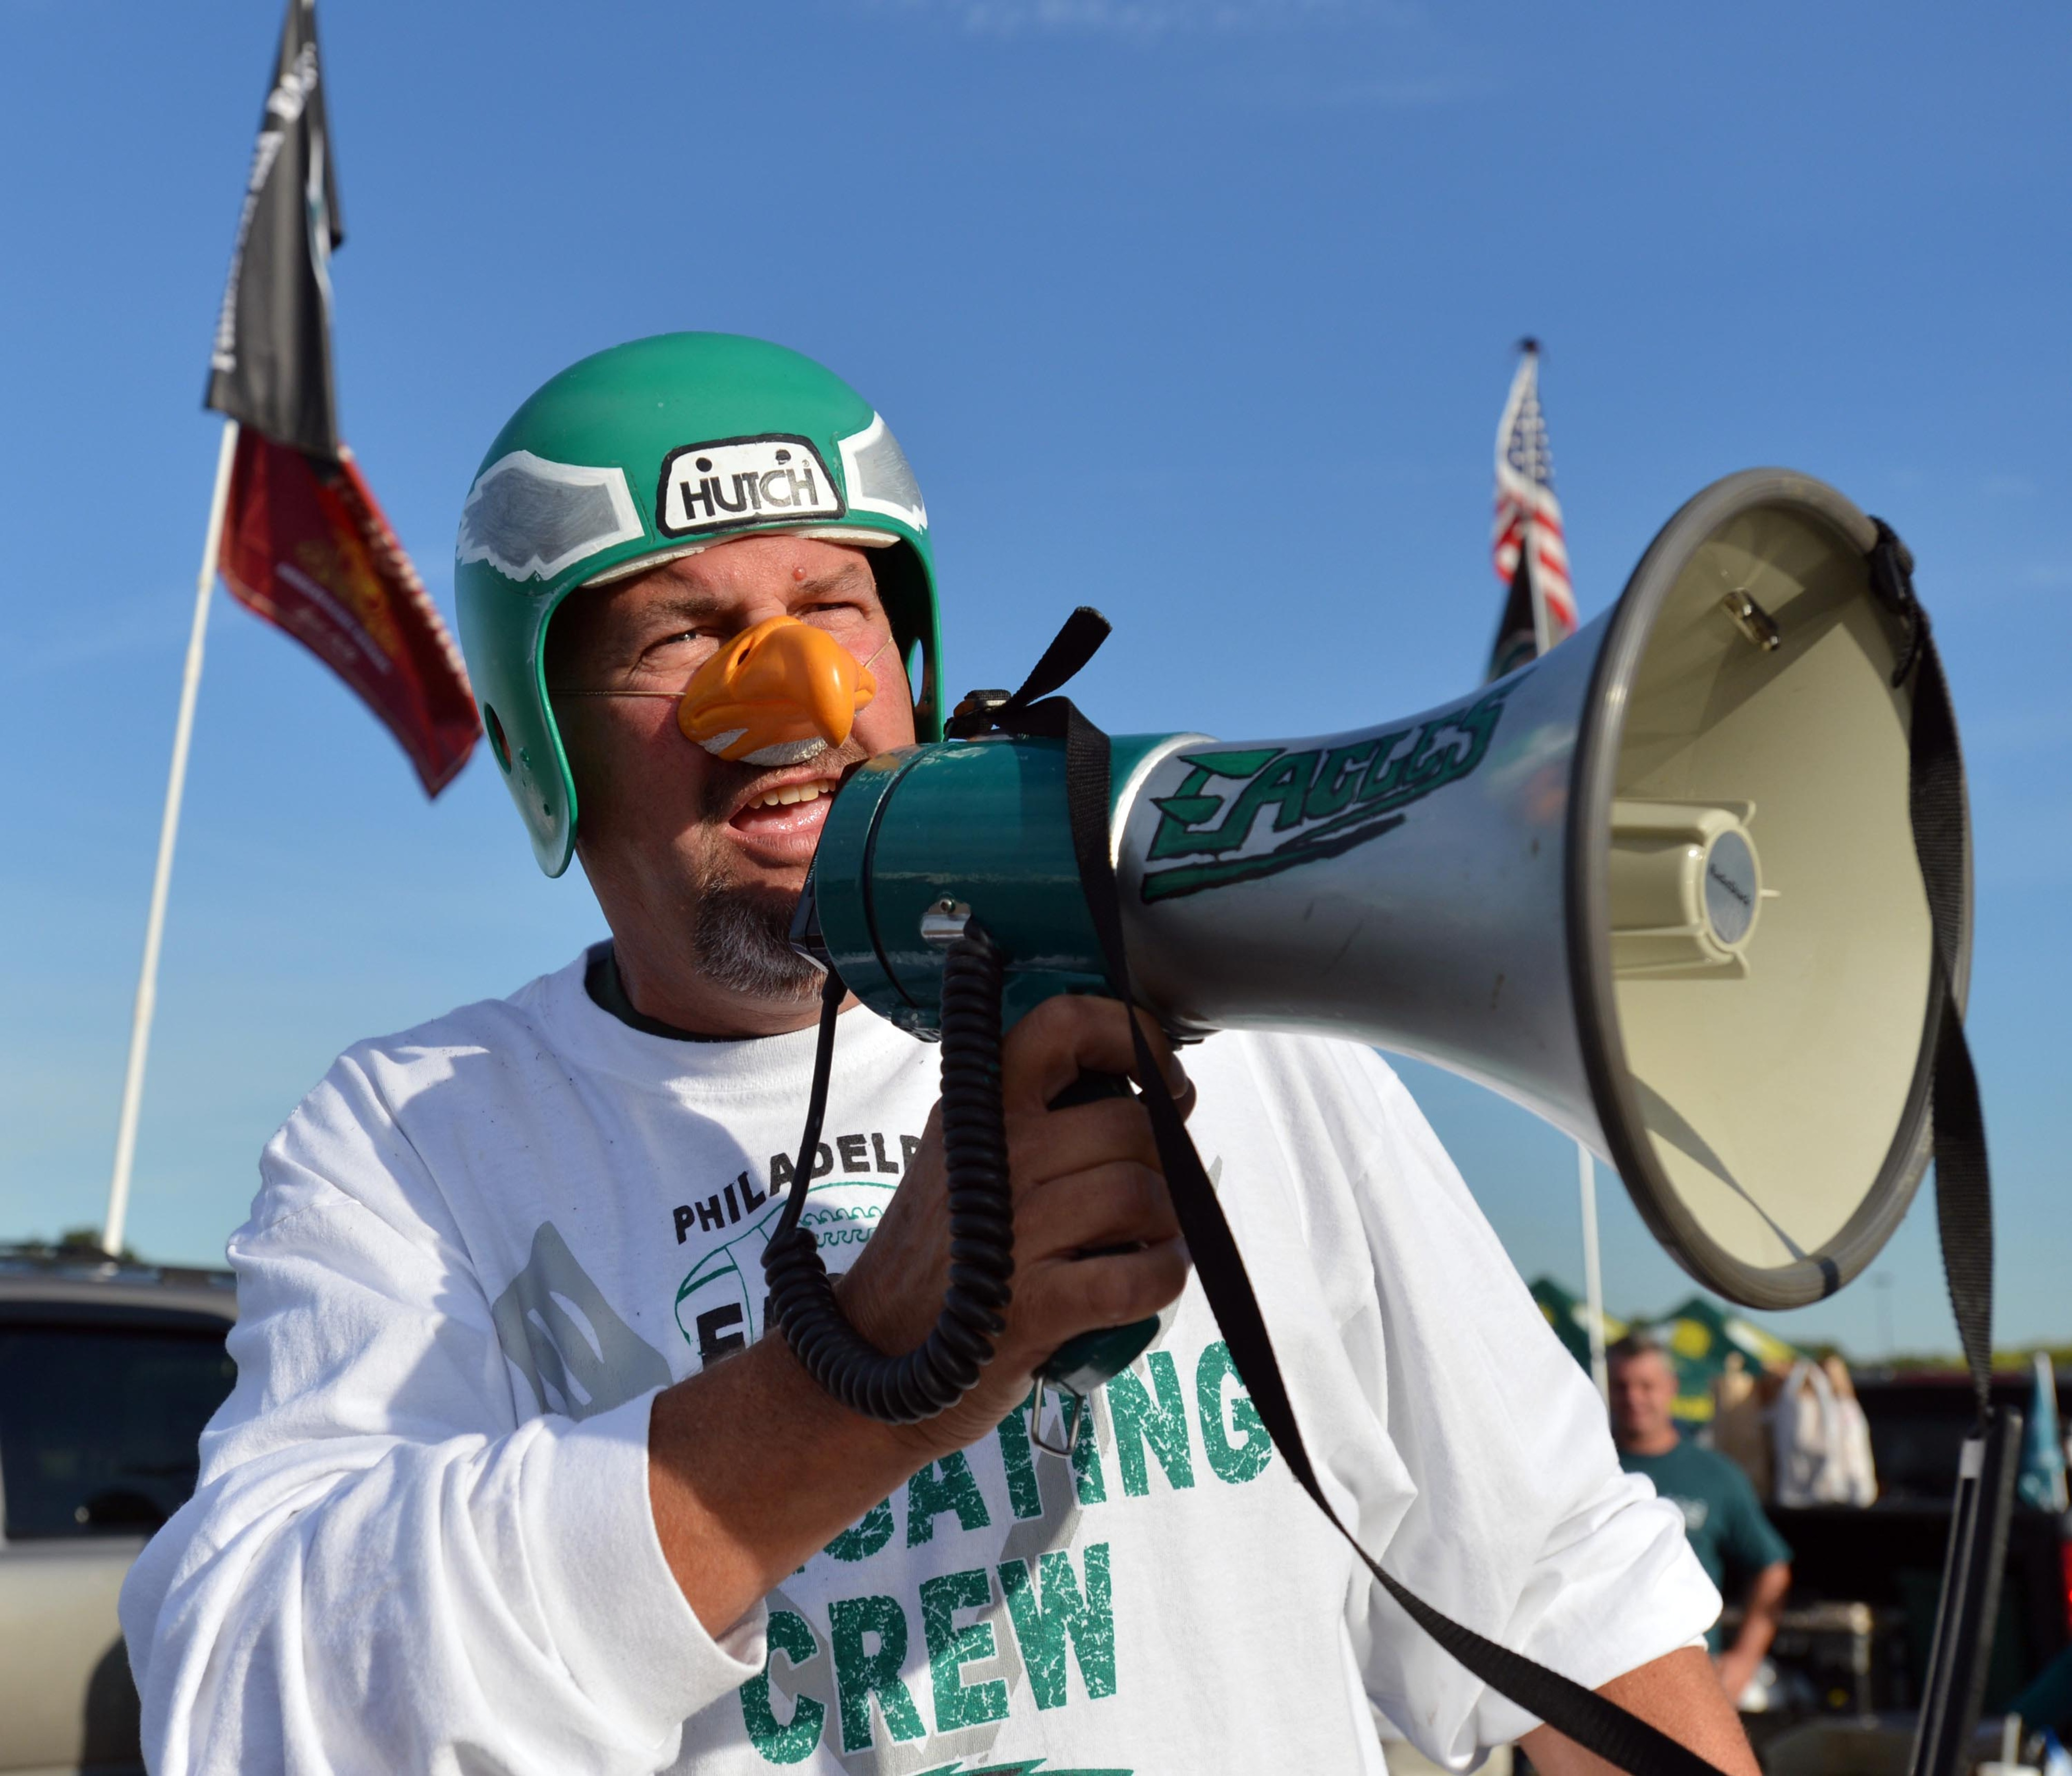 September 16, 2012; Philadelphia, PA, USA; Philadelphia Eagles fan Dave Scofield cheers for the Eagles before the game against the Baltimore Ravens at Lincoln Financial Field. Mandatory Credit: Jeffrey G. Pittenger